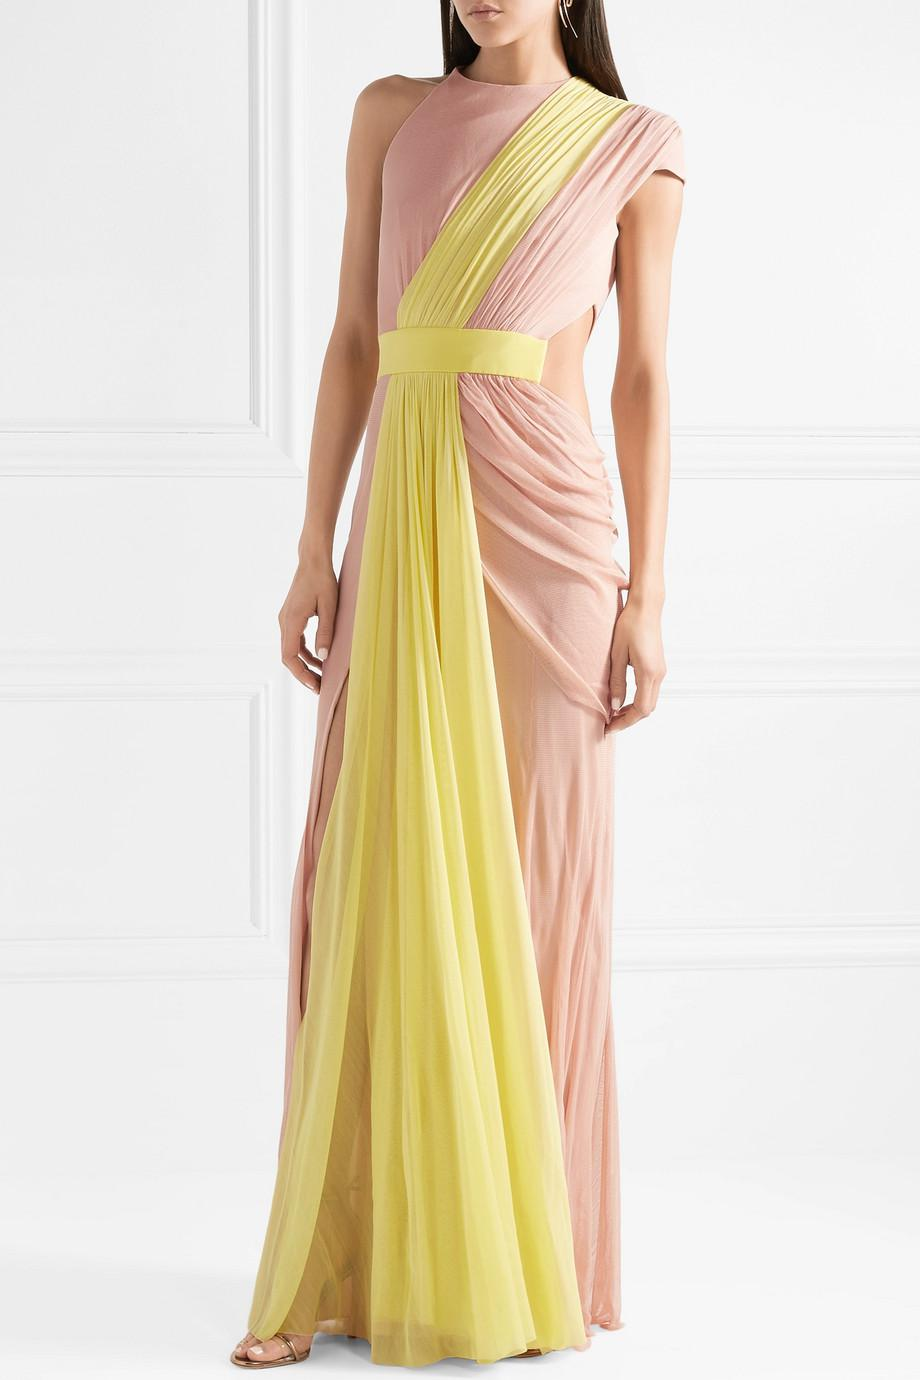 One-shoulder Draped Two-tone Silk-tulle Gown - Yellow Cushnie et Ochs QvYdCnb3